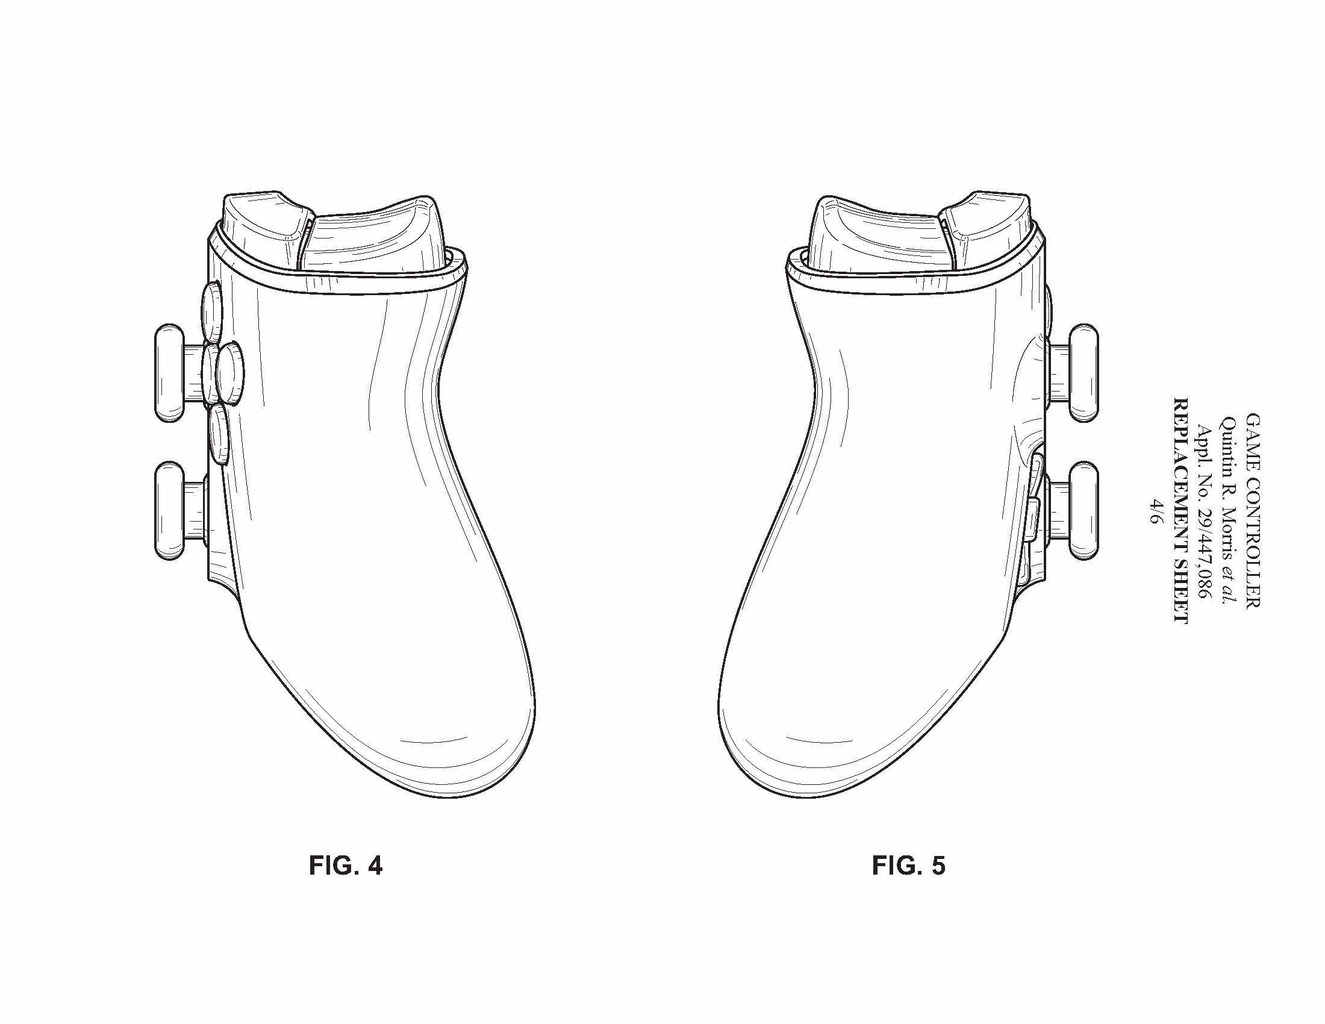 Significance Of Successful Design Patent Portfolios